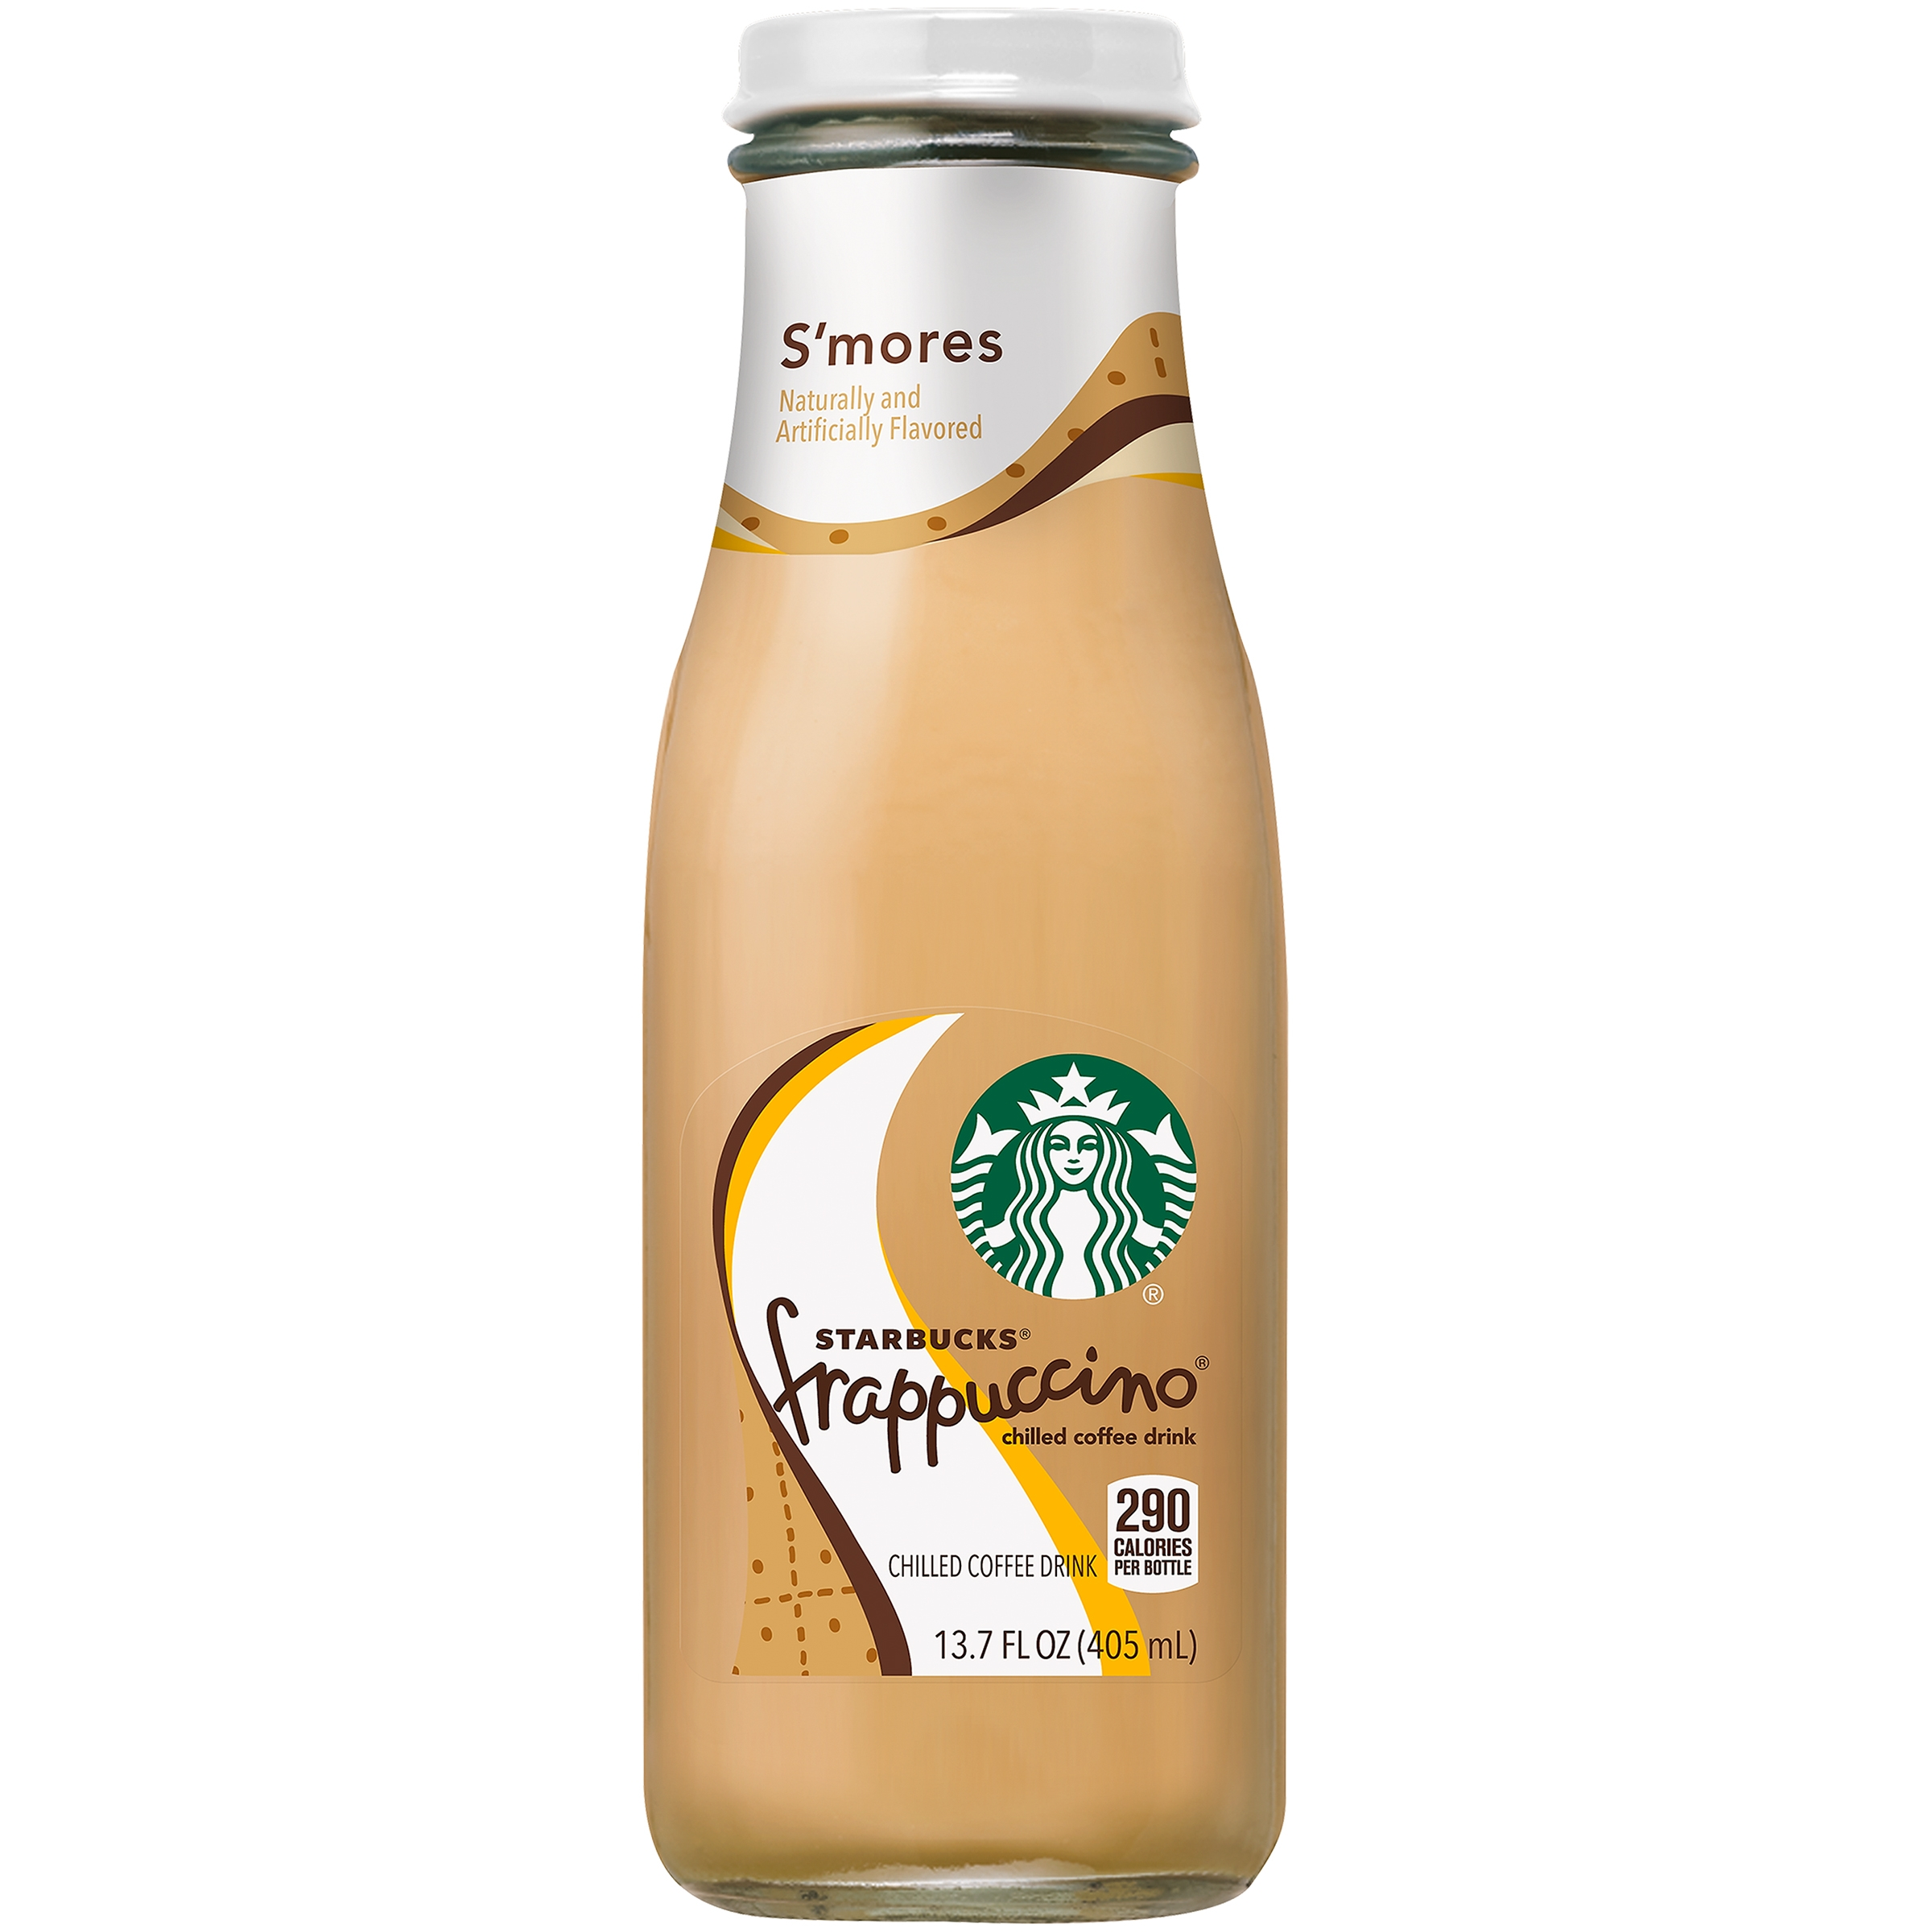 Starbucks Frappuccino S'mores Coffee Drink, 13.7 fl oz